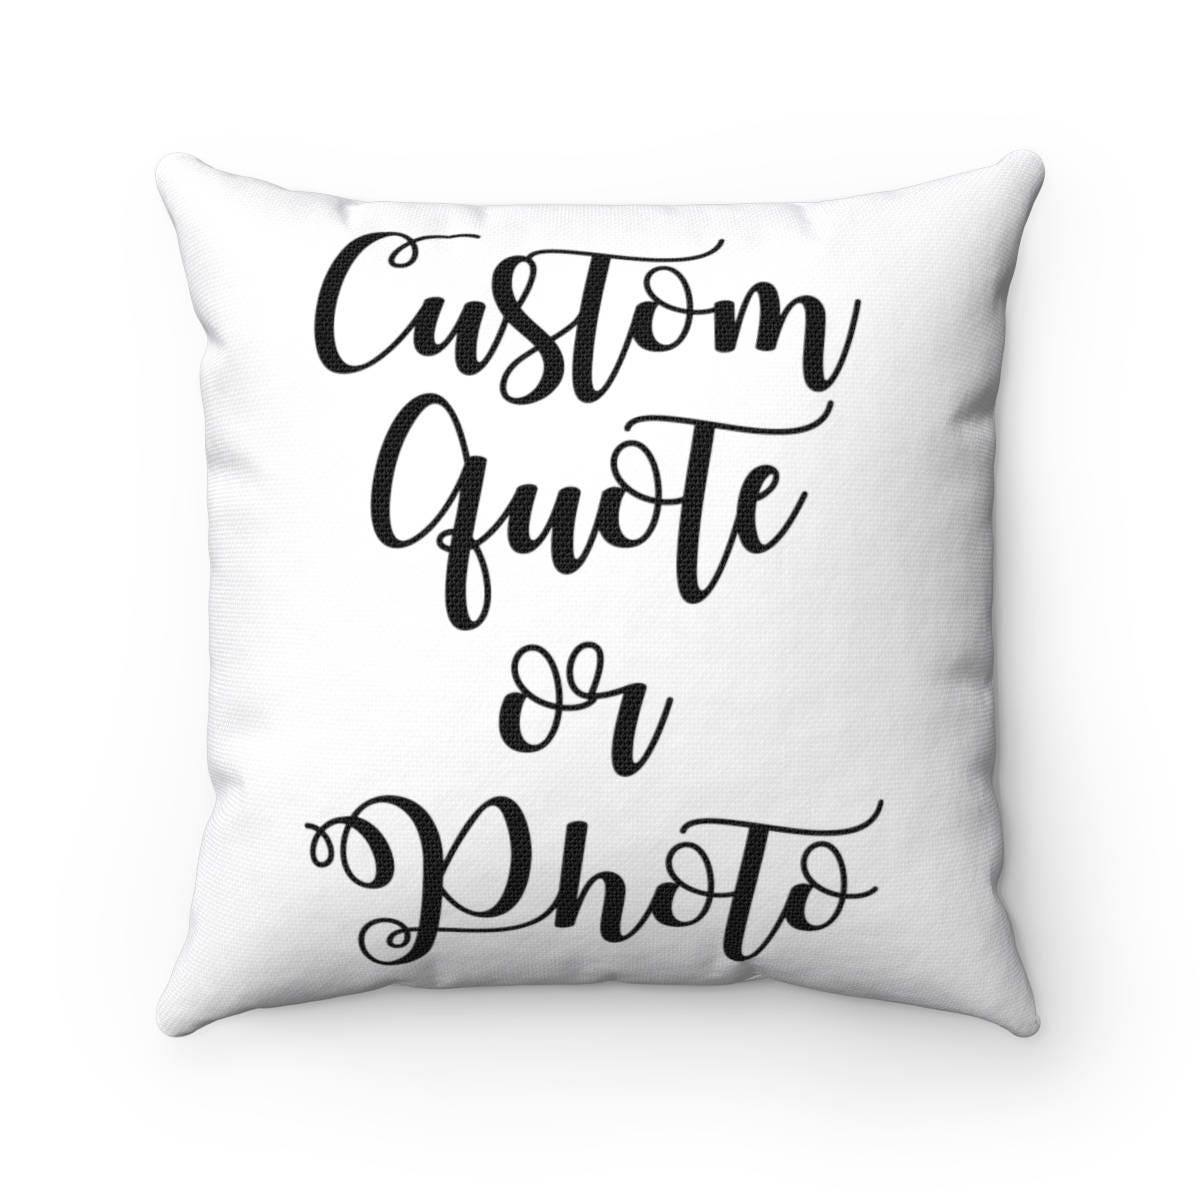 Customized Throw Pillow - Personalized Decorative Pillows - Custom Gifts  for Women Her Sister Mother of the Bride or Groom 03a4faad3